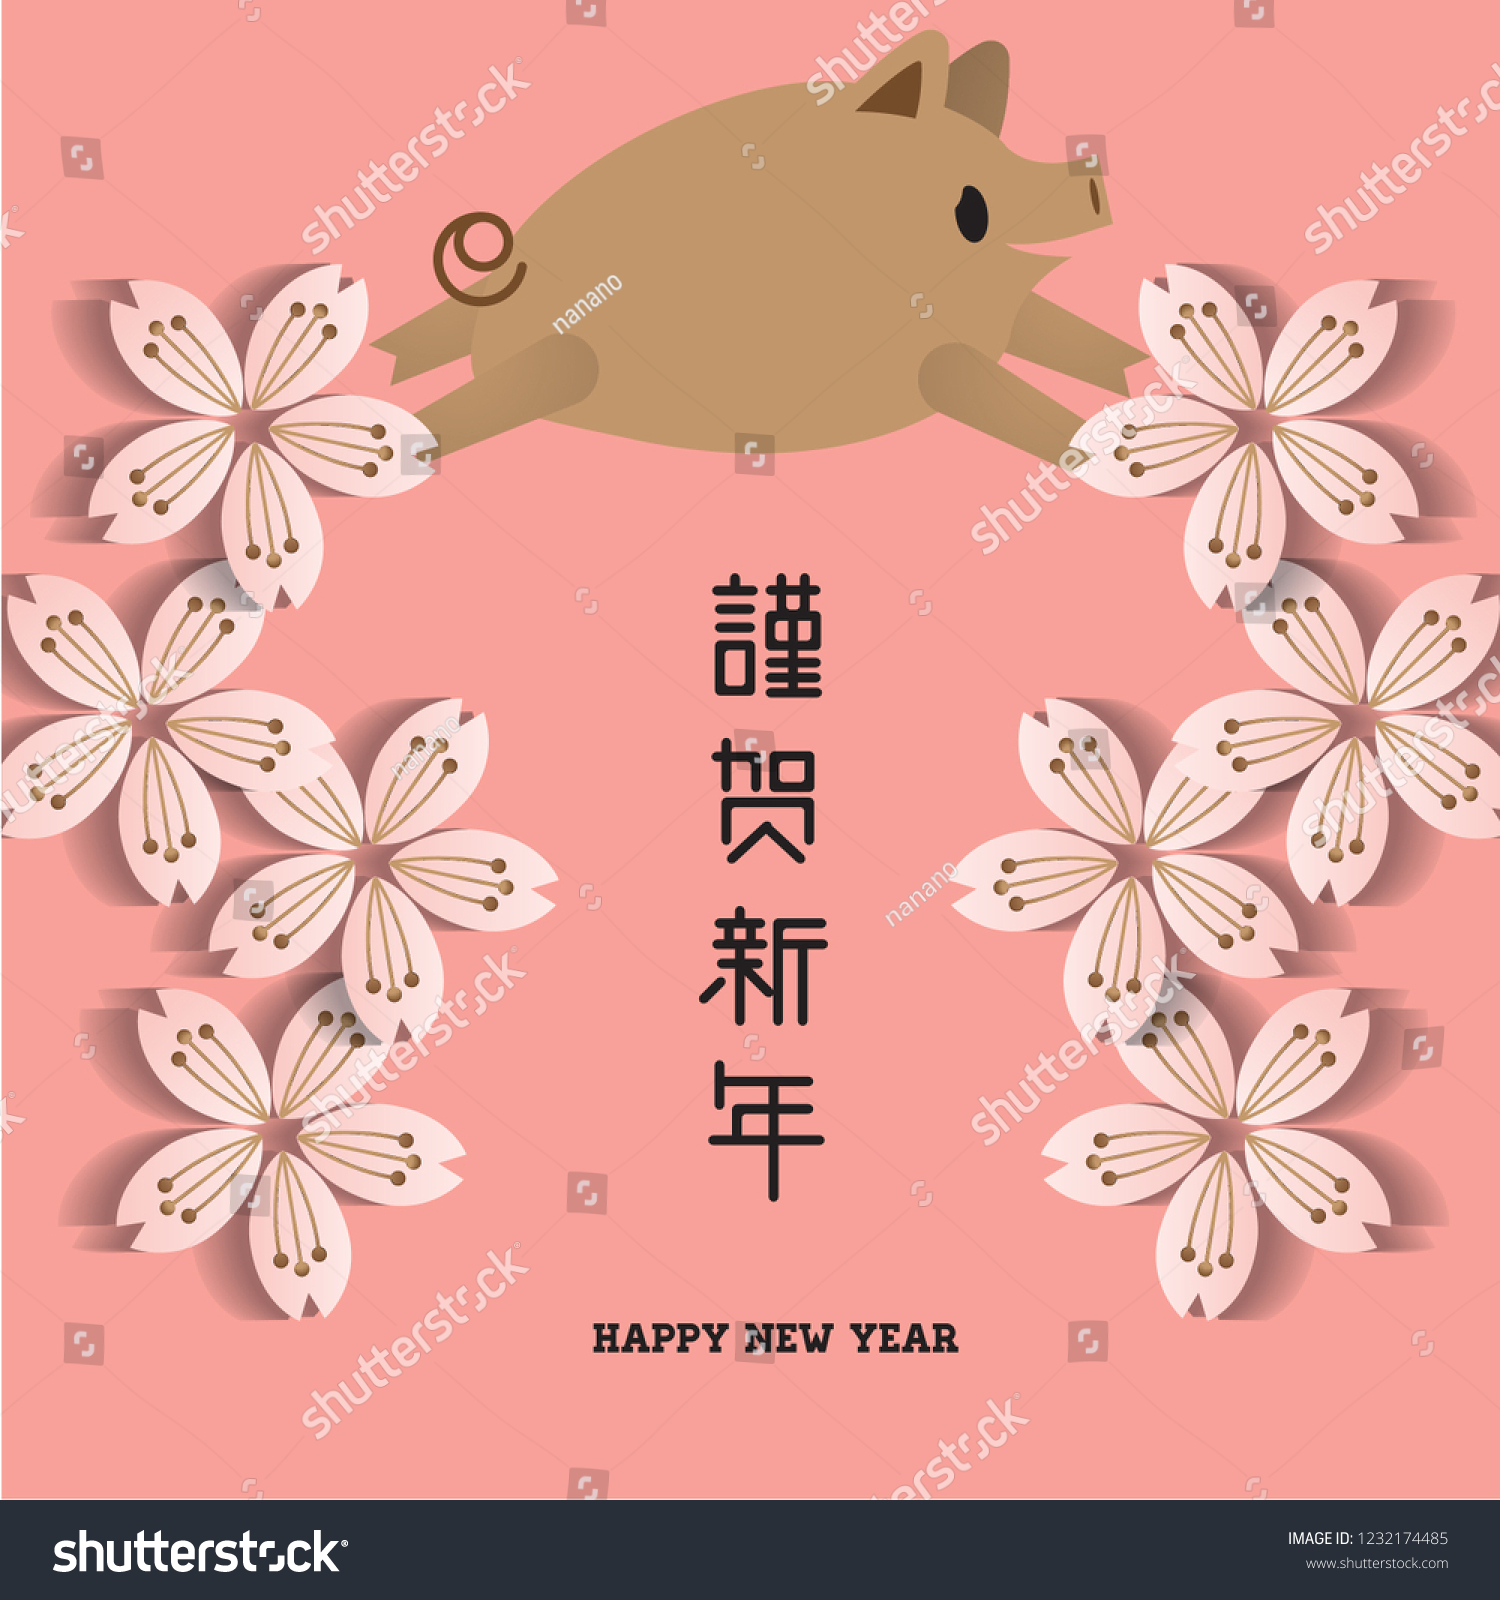 year of pig 2019 invitation card chinese new year 2019 paper art